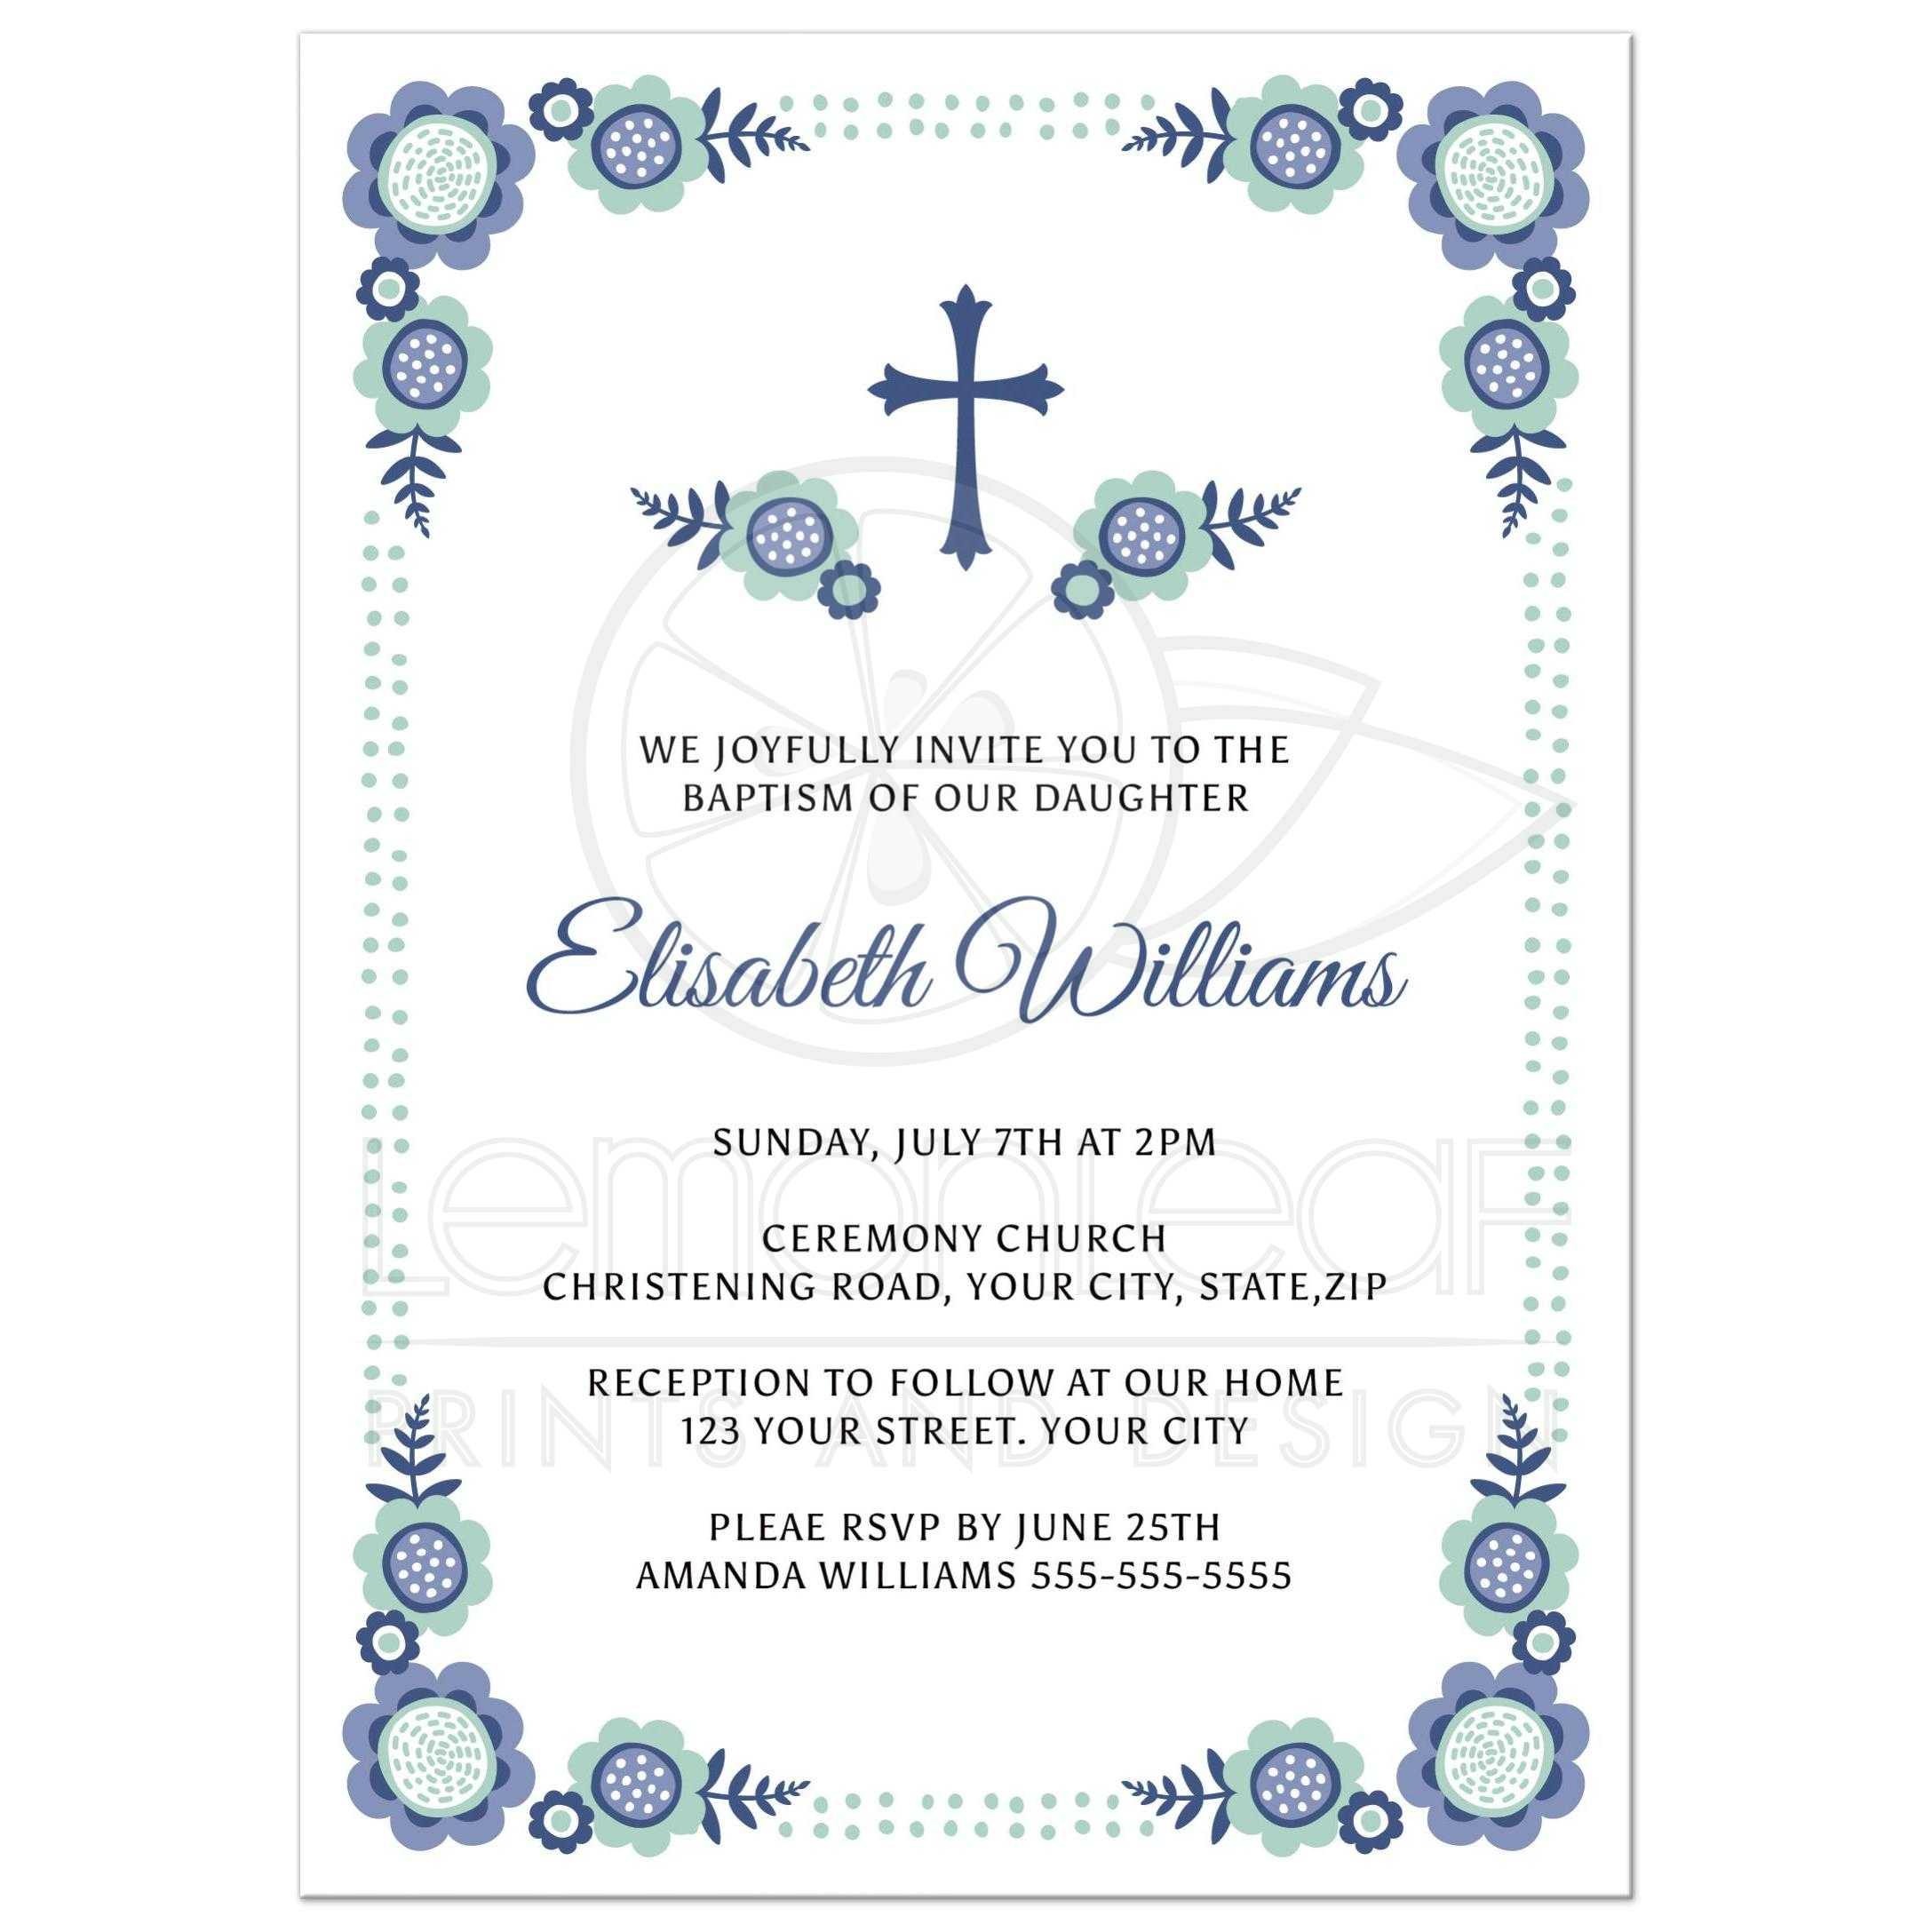 Office Holiday Invitation Wording with great invitation design